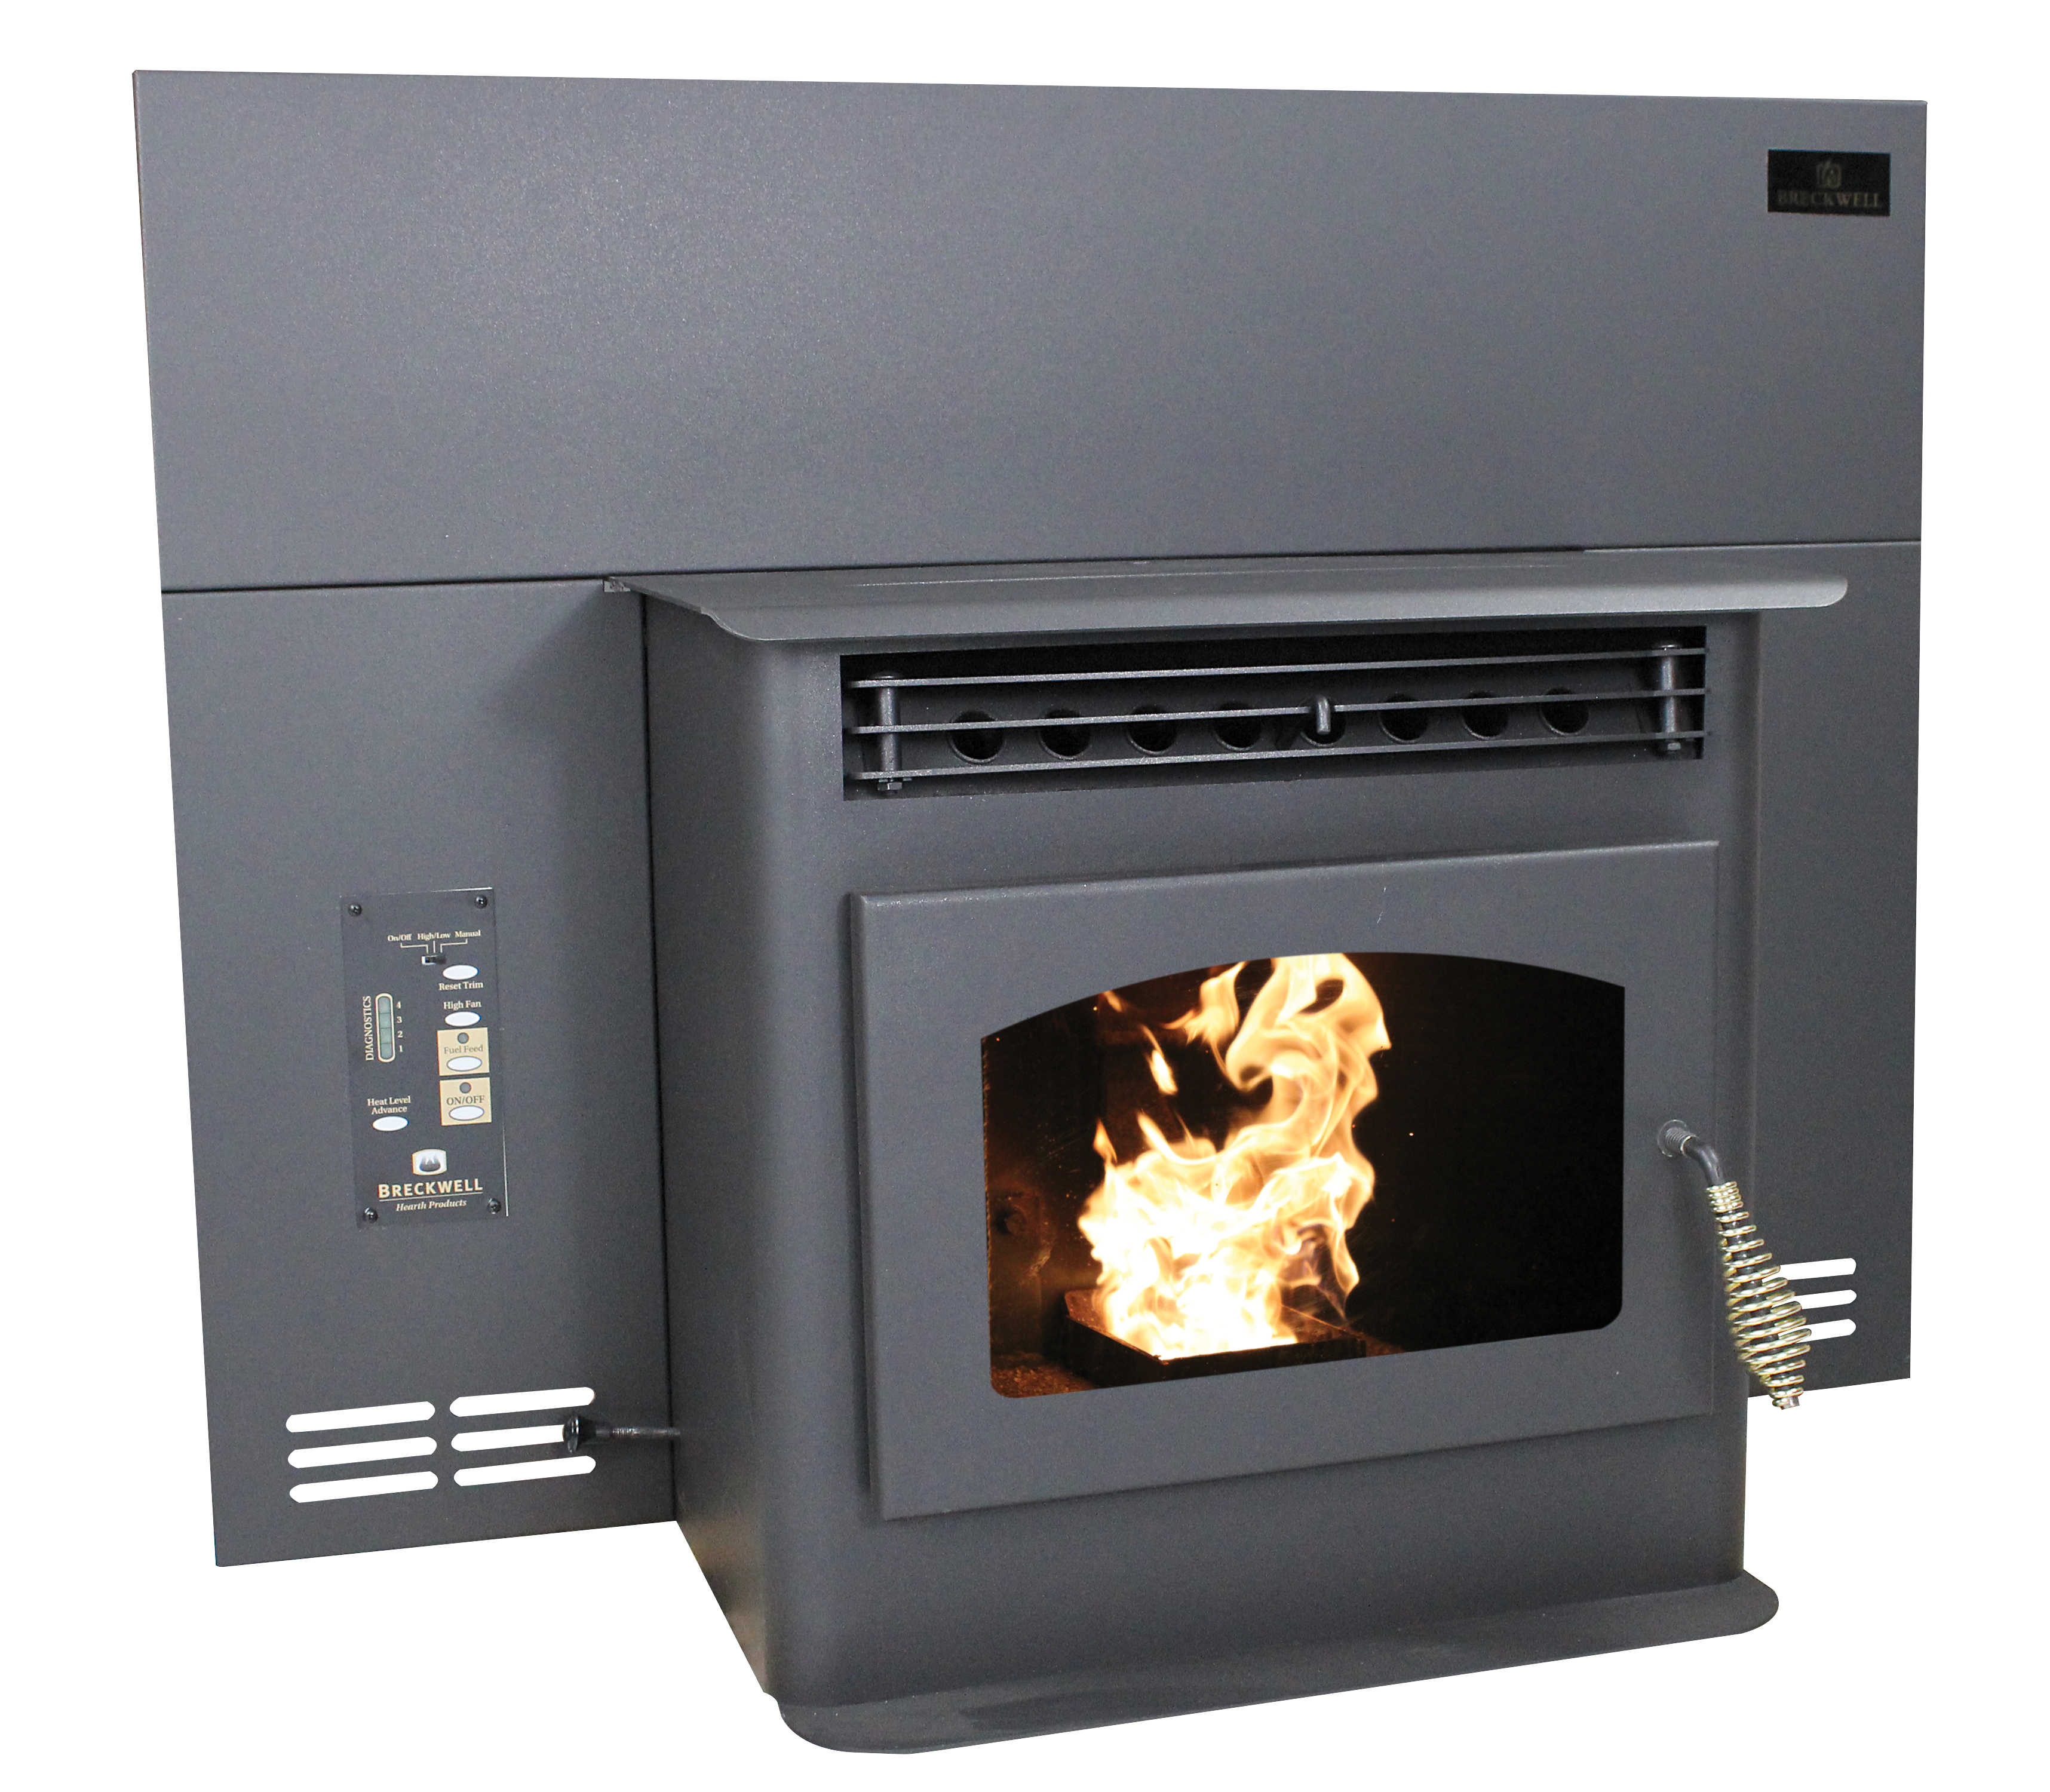 Breckwell Maverick SP22i Pellet Insert Stove w/Panel • Buck Stove on breckwell gas stoves, wood stove diagram, breckwell pellet stove replacement parts,